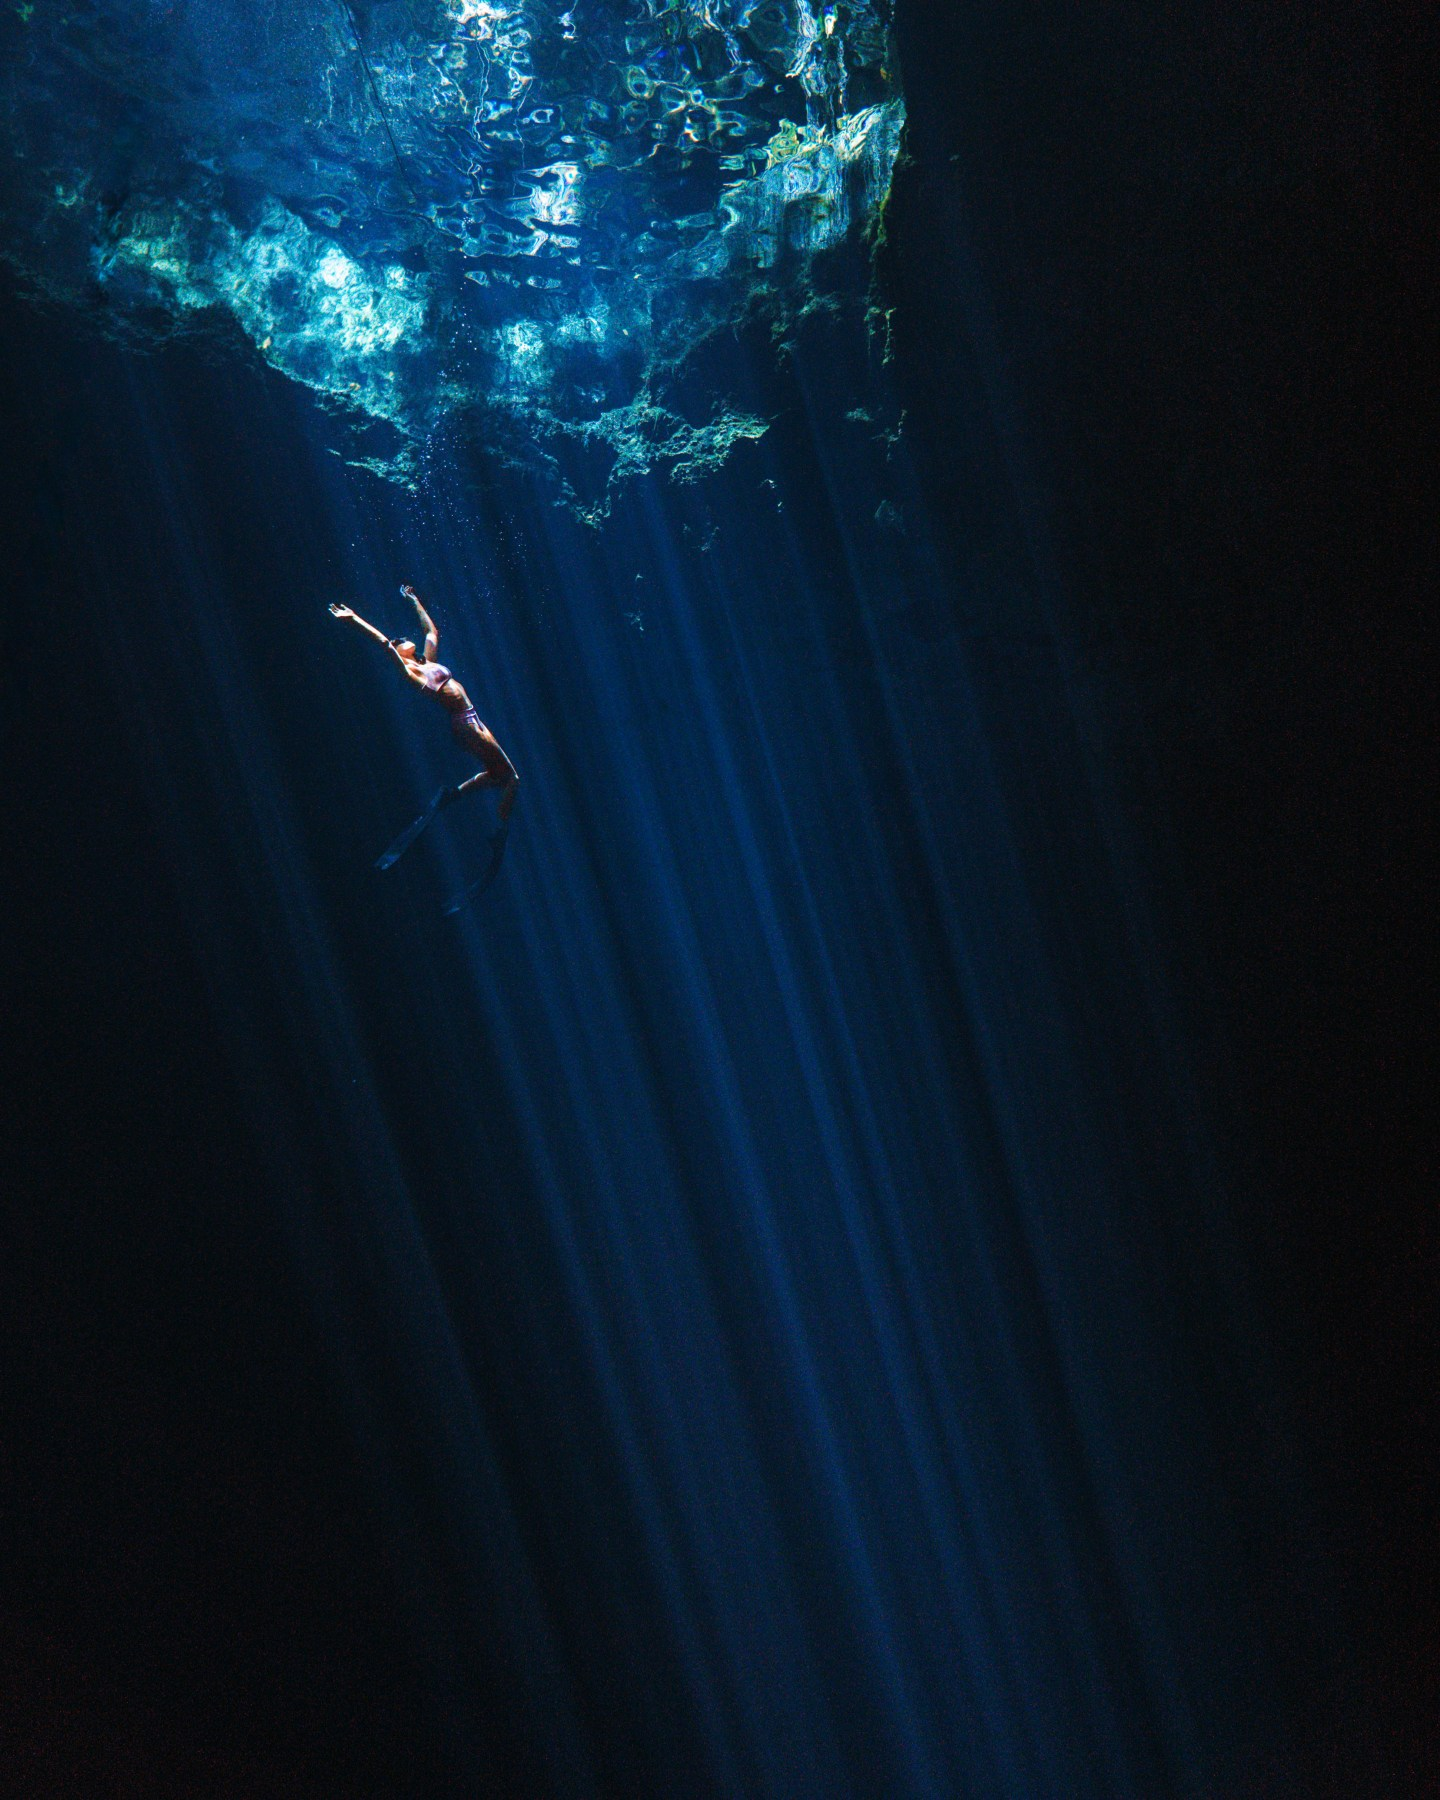 Maravilla Cenote Quintana Roo Mexico. This guide gives you tips for all of the best cenotes in Tulum and the best cenotes near Tulum including what to pack for the best Tulum cenotes and more. If you are looking for day trips from Tulum, check out the best cenotes in Quintana Roo and best cenotes in Yucatan for ideas!   Tulum cenotes photography   cenotes Mexico tulum   cenotes tulum riviera maya   best cenotes in quintana roo   cenotes quintana roo   cenotes in playa del carmen